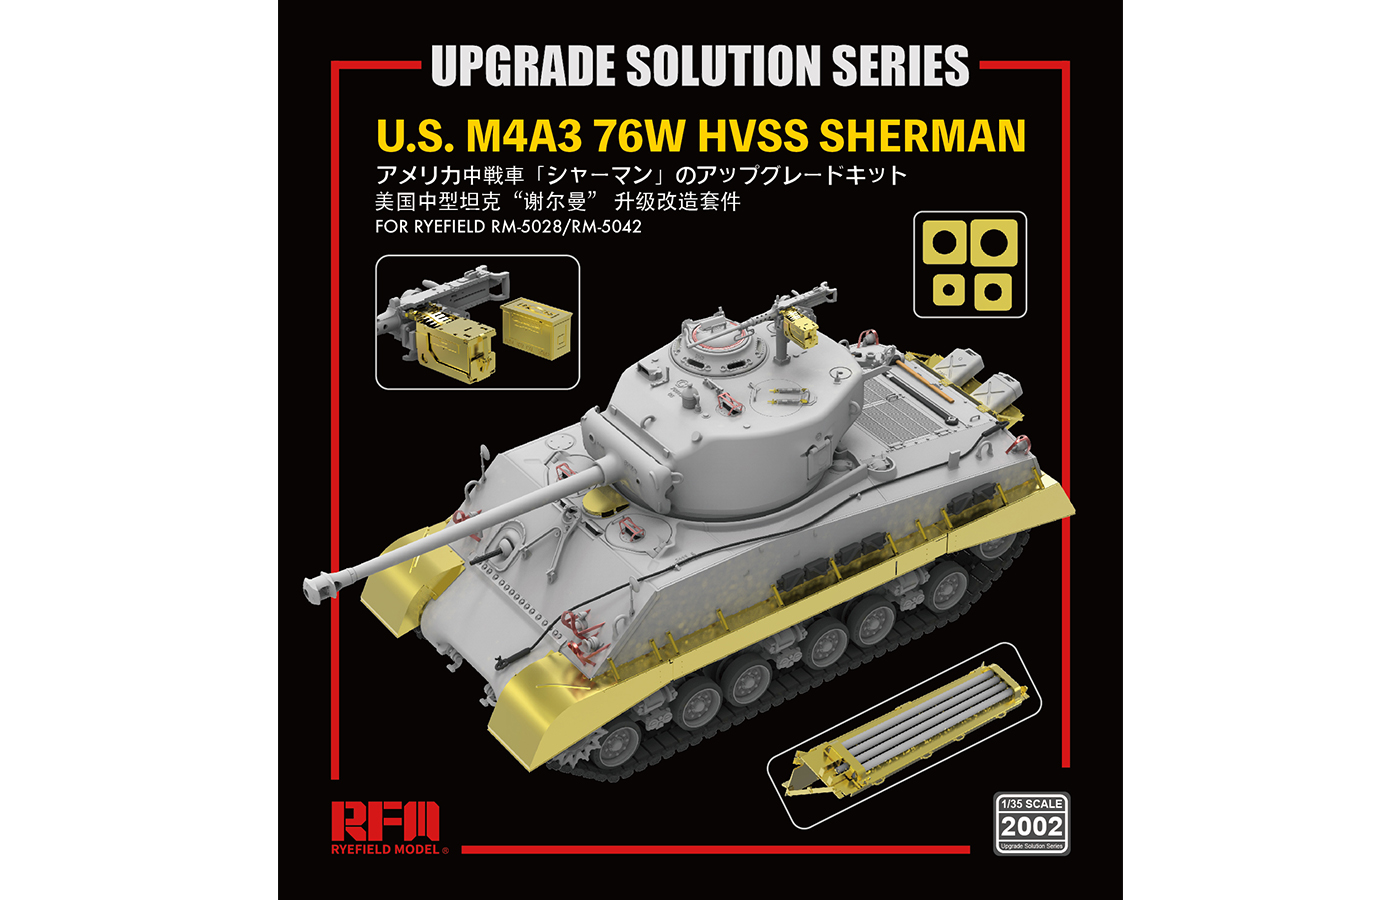 RM-2002 U.S M4A3 76W HVSS SHERMAN UPGRADE SOLUTION SERIES